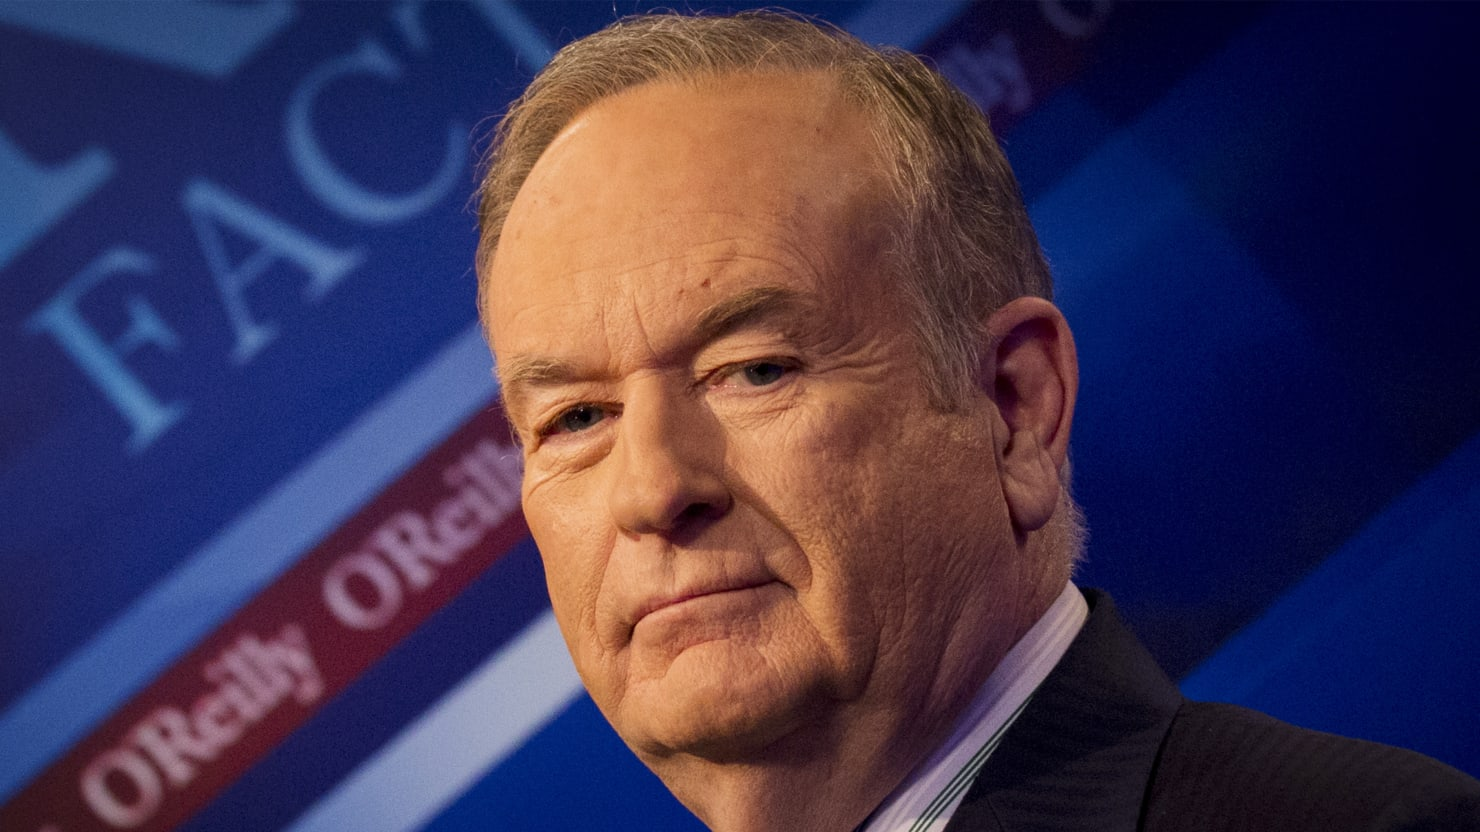 Bill O'Reilly, Without a Hint of Self-Awareness, Hits Bloomberg on NDAs